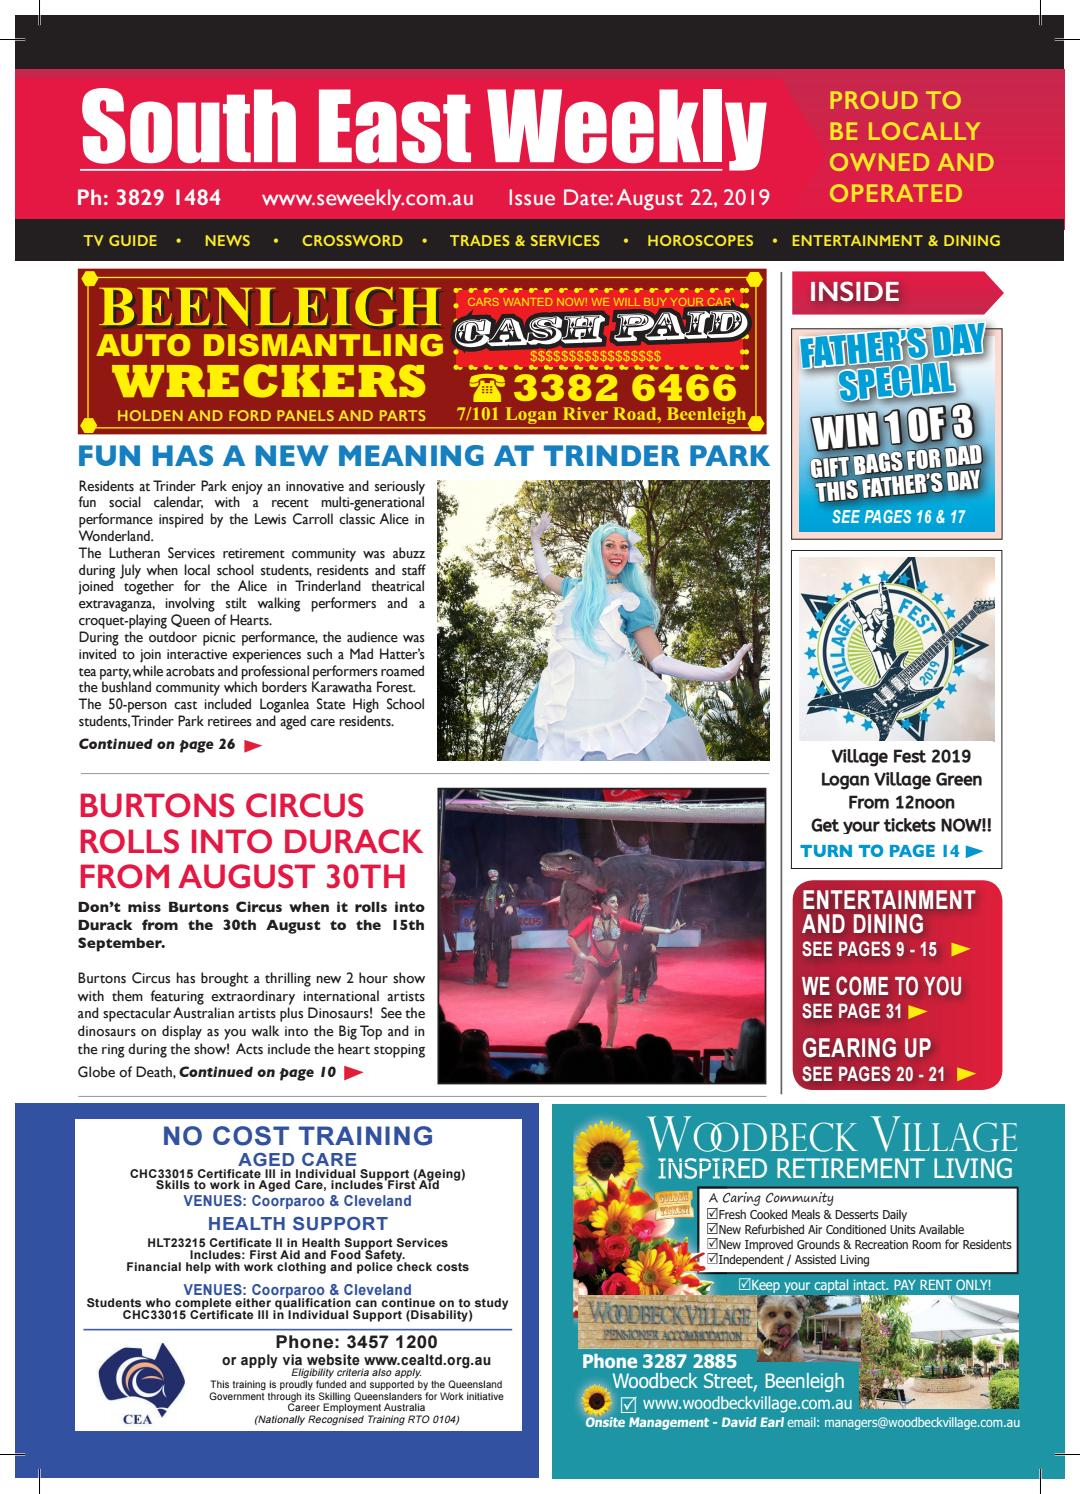 South East Weekly Magazine August 22 2019 By South East Weekly